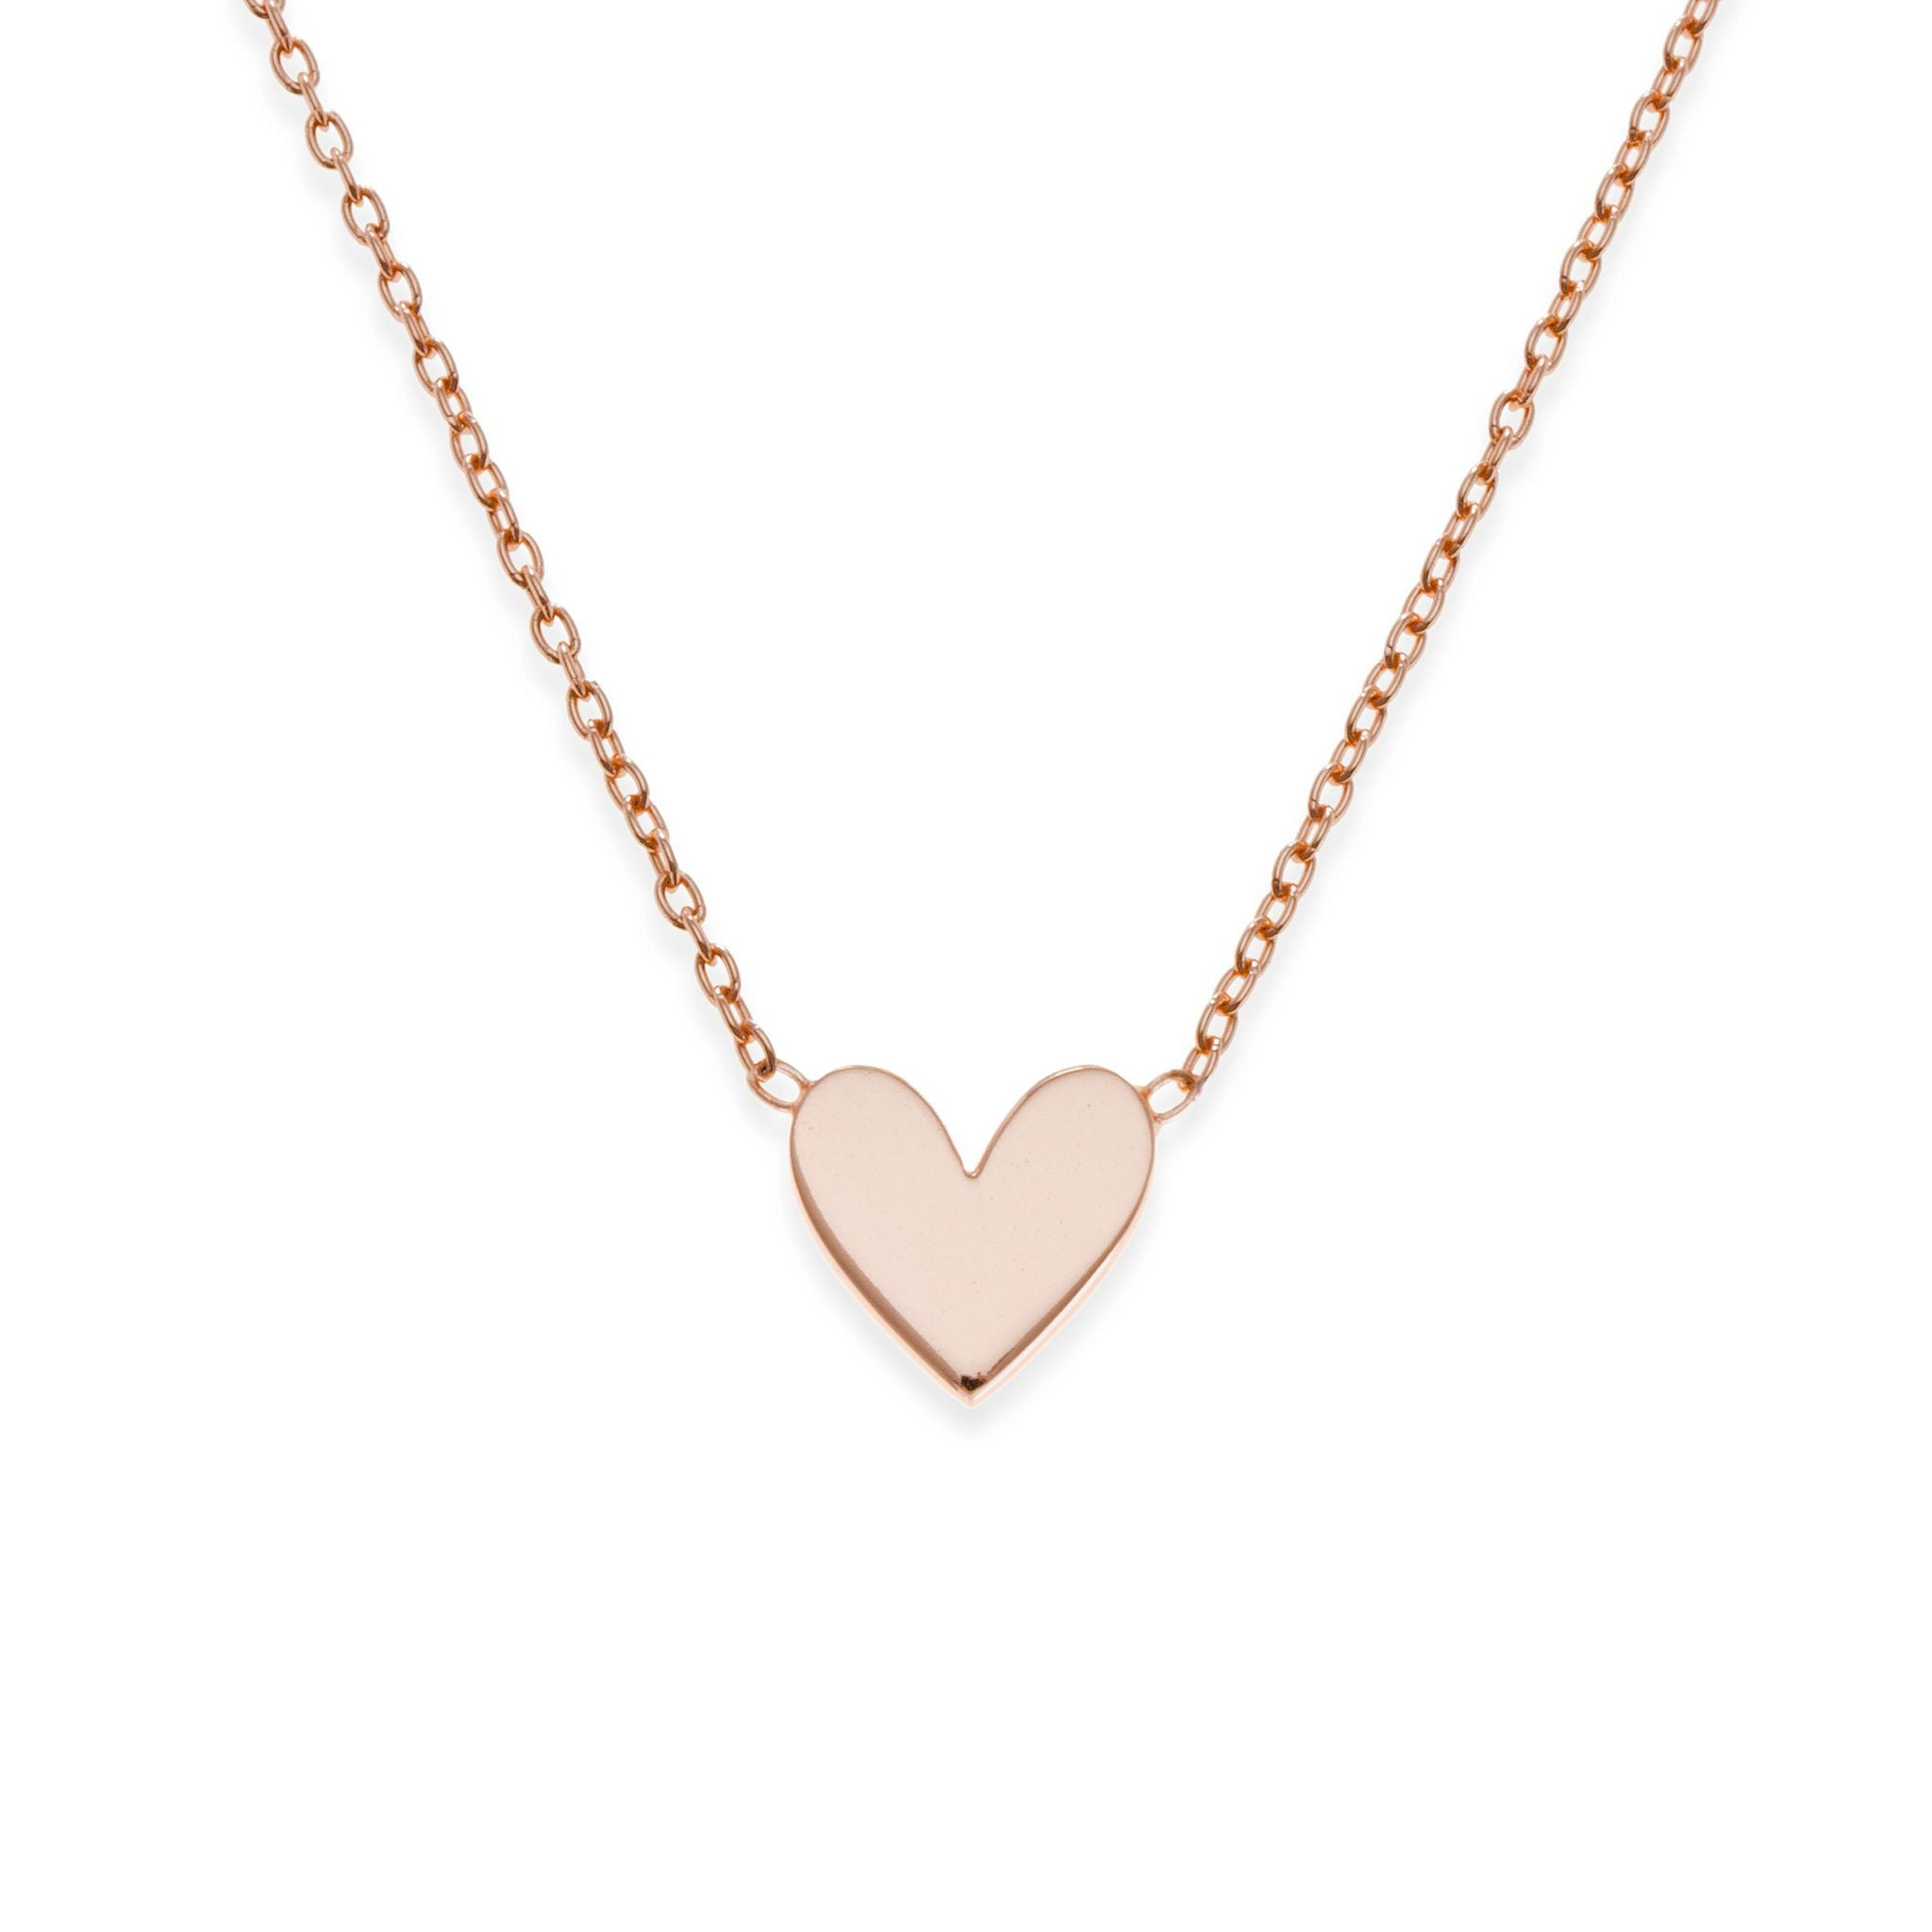 os size alcazar necklace necklaces product heart